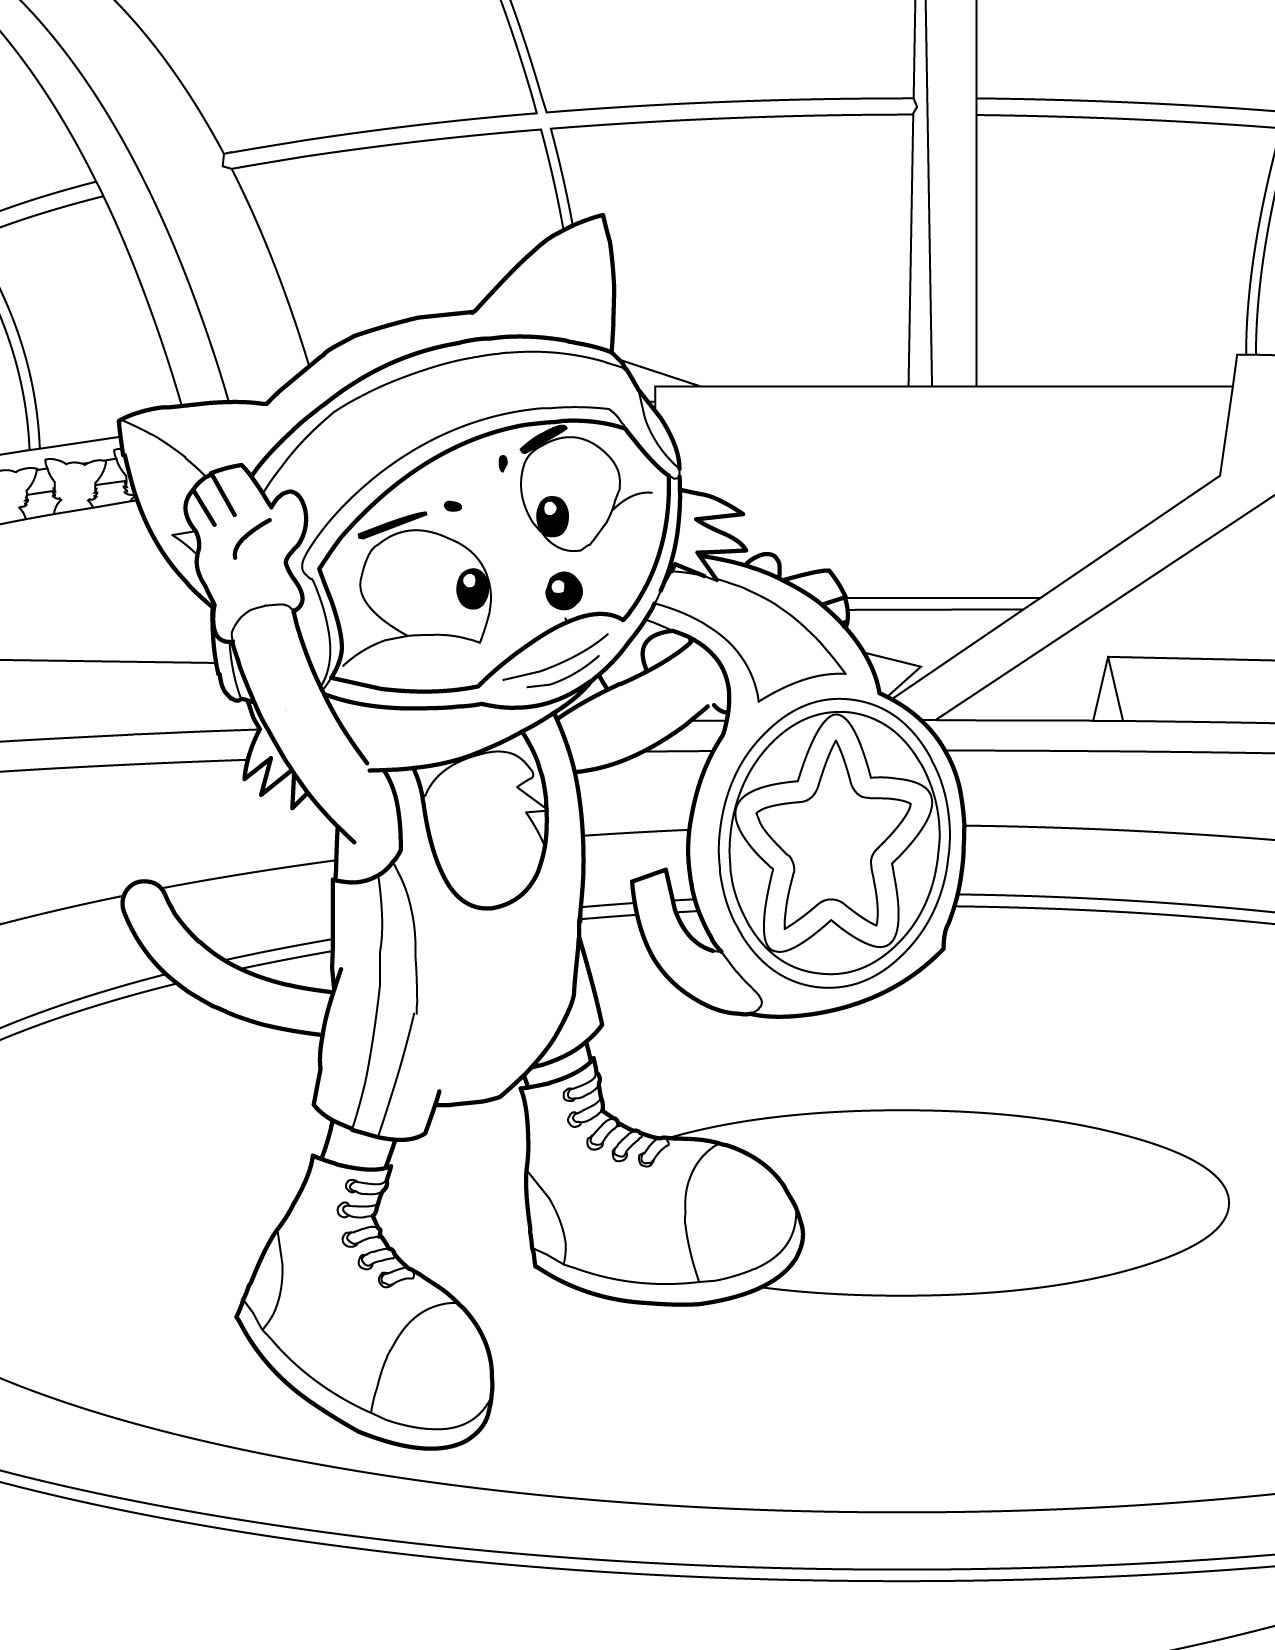 Wrestling Coloring Pages For Kids - Coloring Home